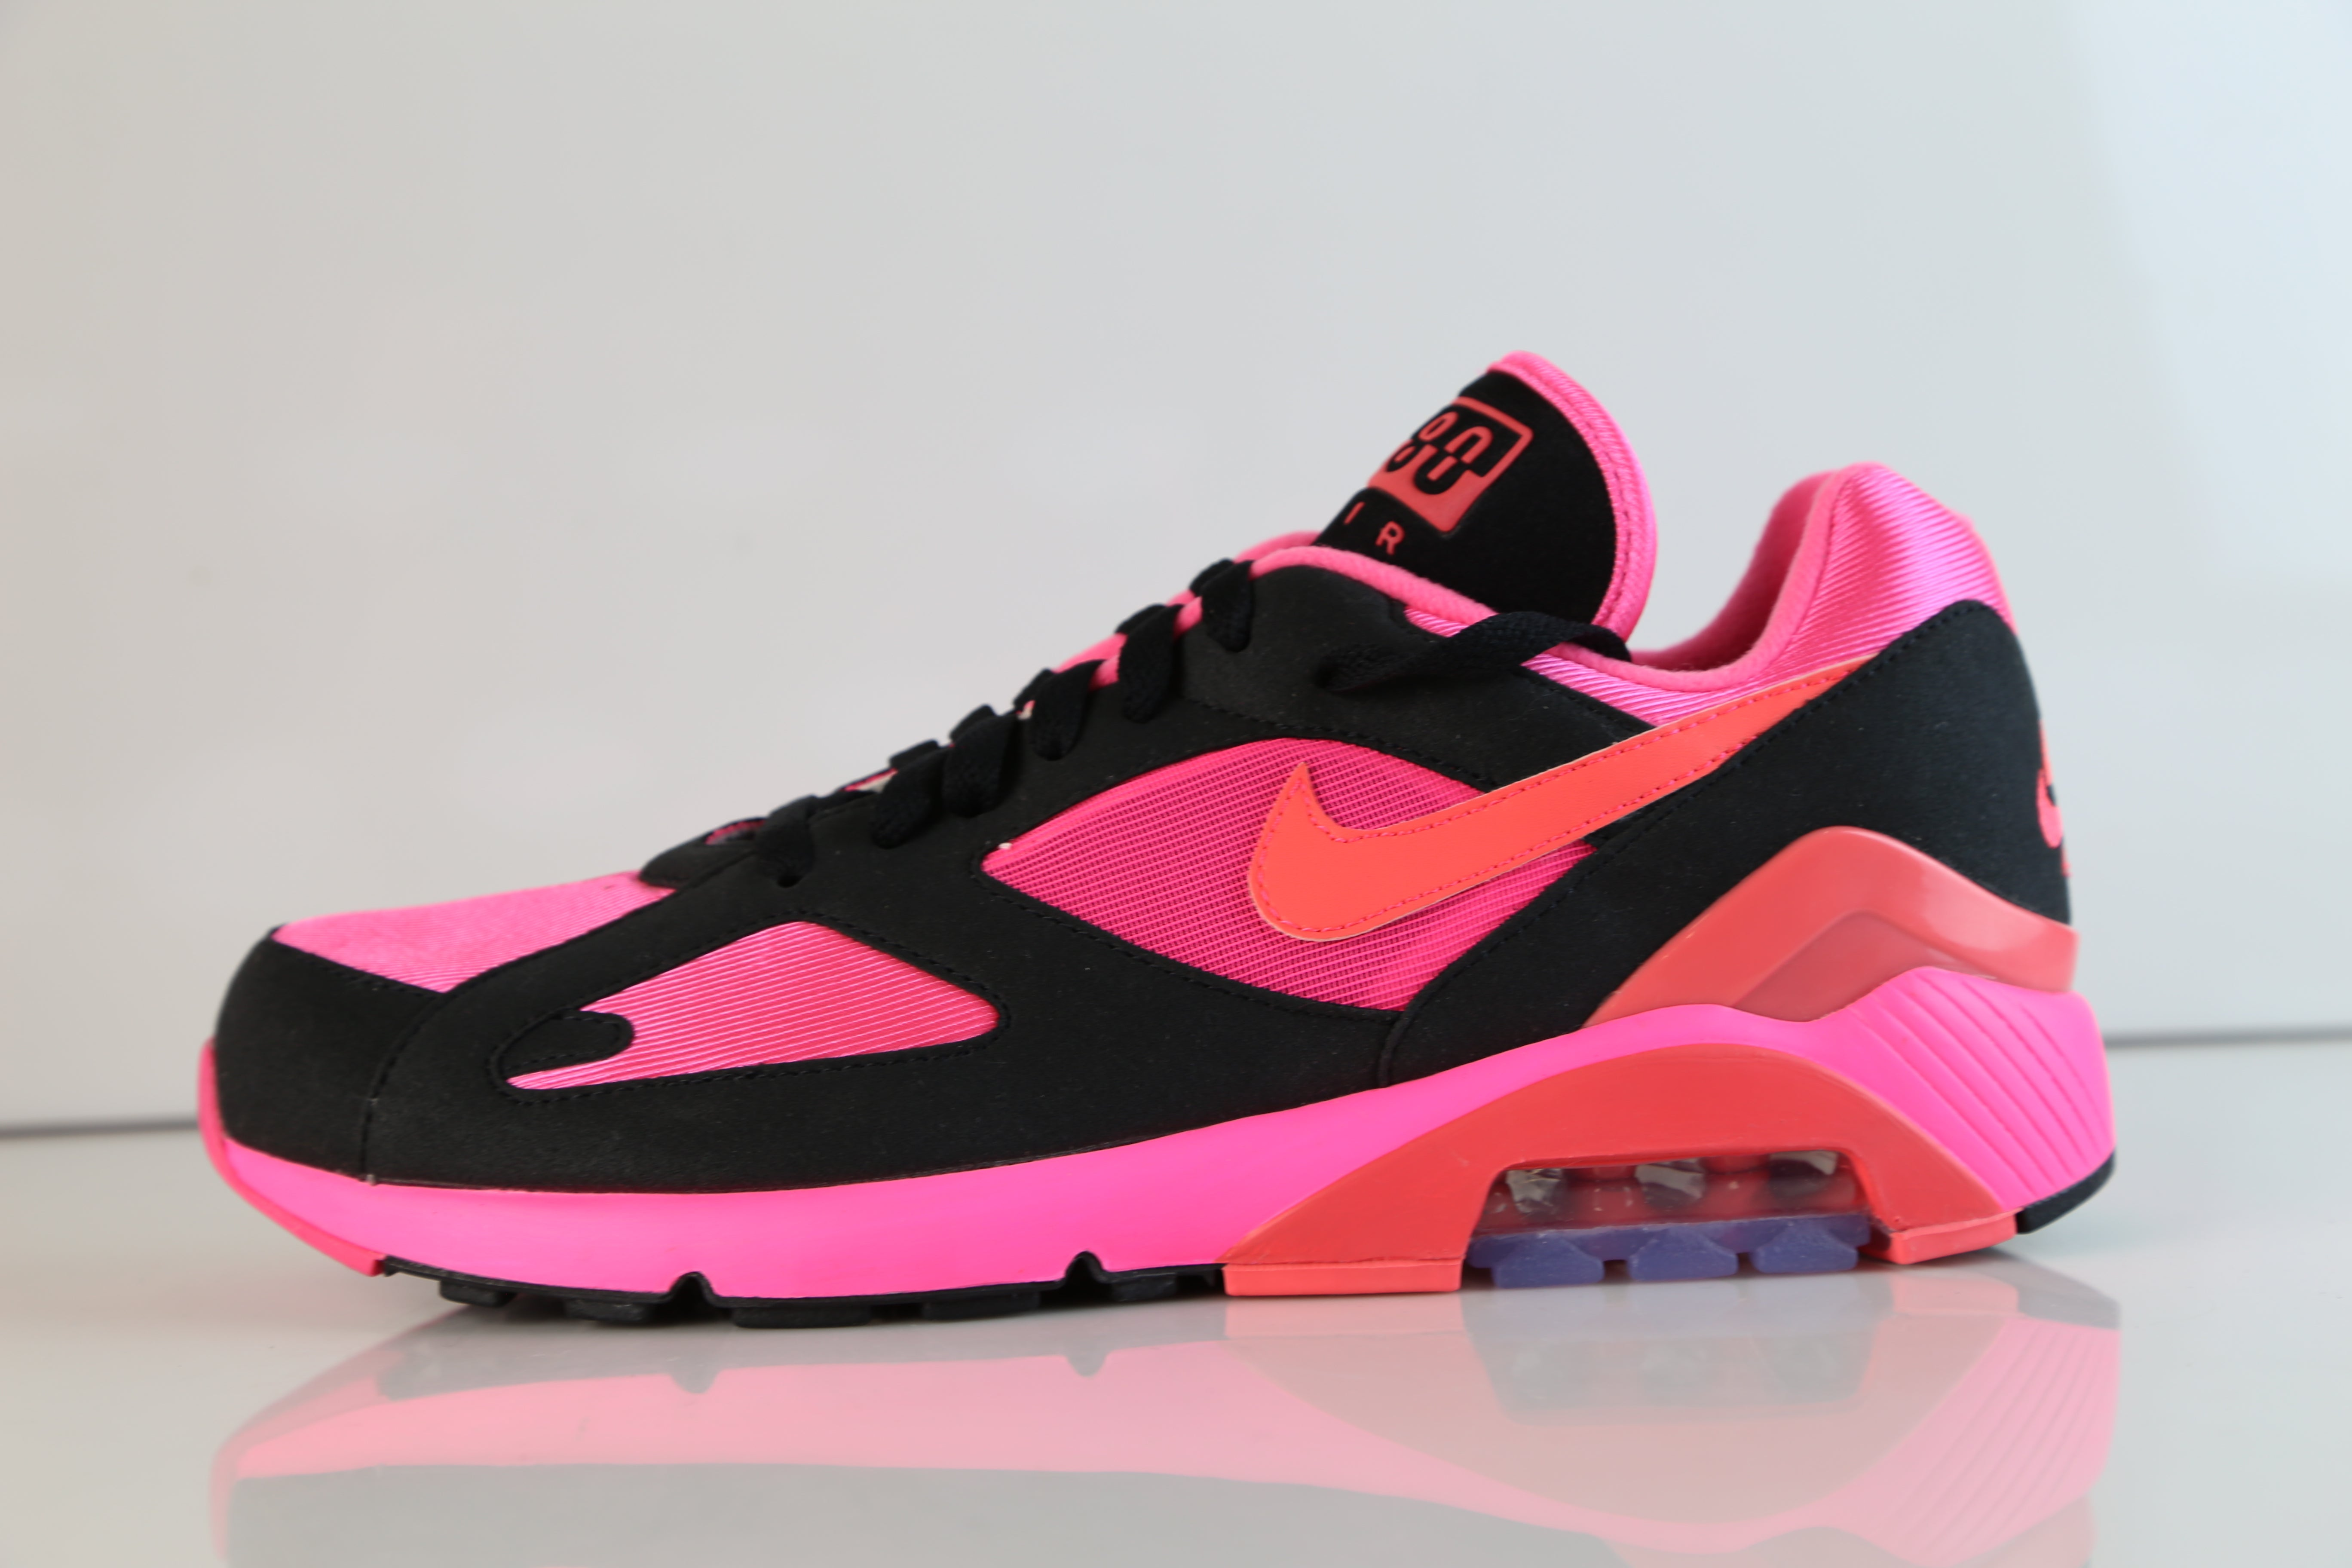 Nike Air Max 1 Solar Pink | International College of